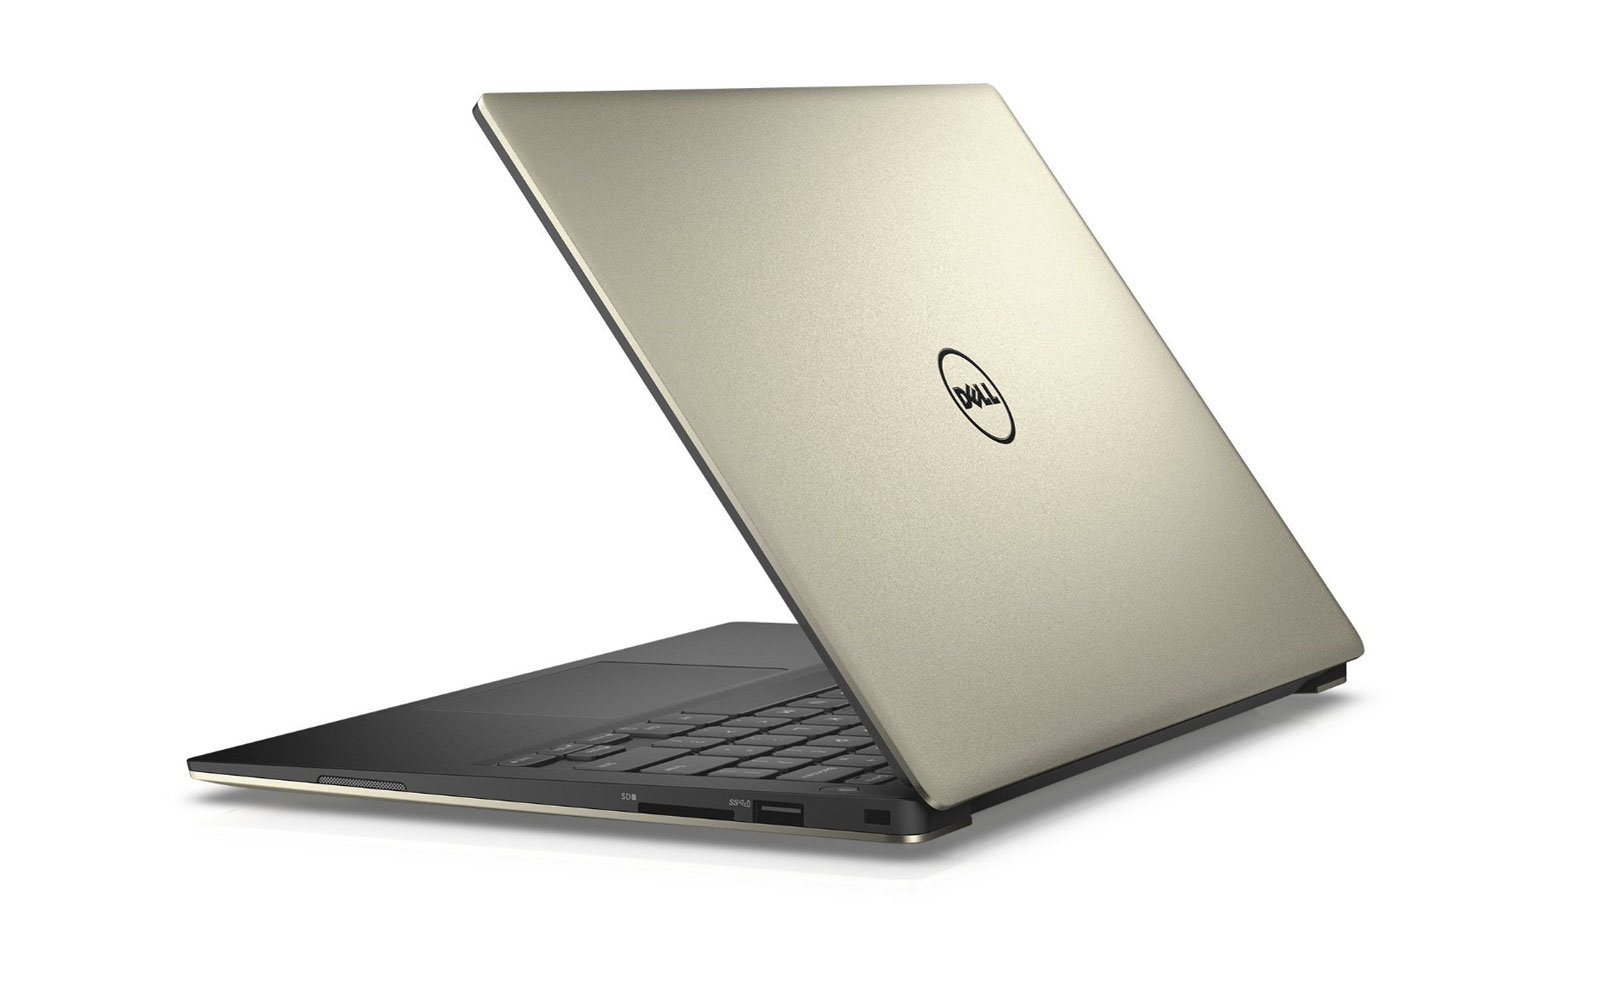 let are dell nomad has model the a need is for s fast reliable metal so post value review to answers laptops acer best light looking that all choose you chassis analyze your laptop hp and asus this